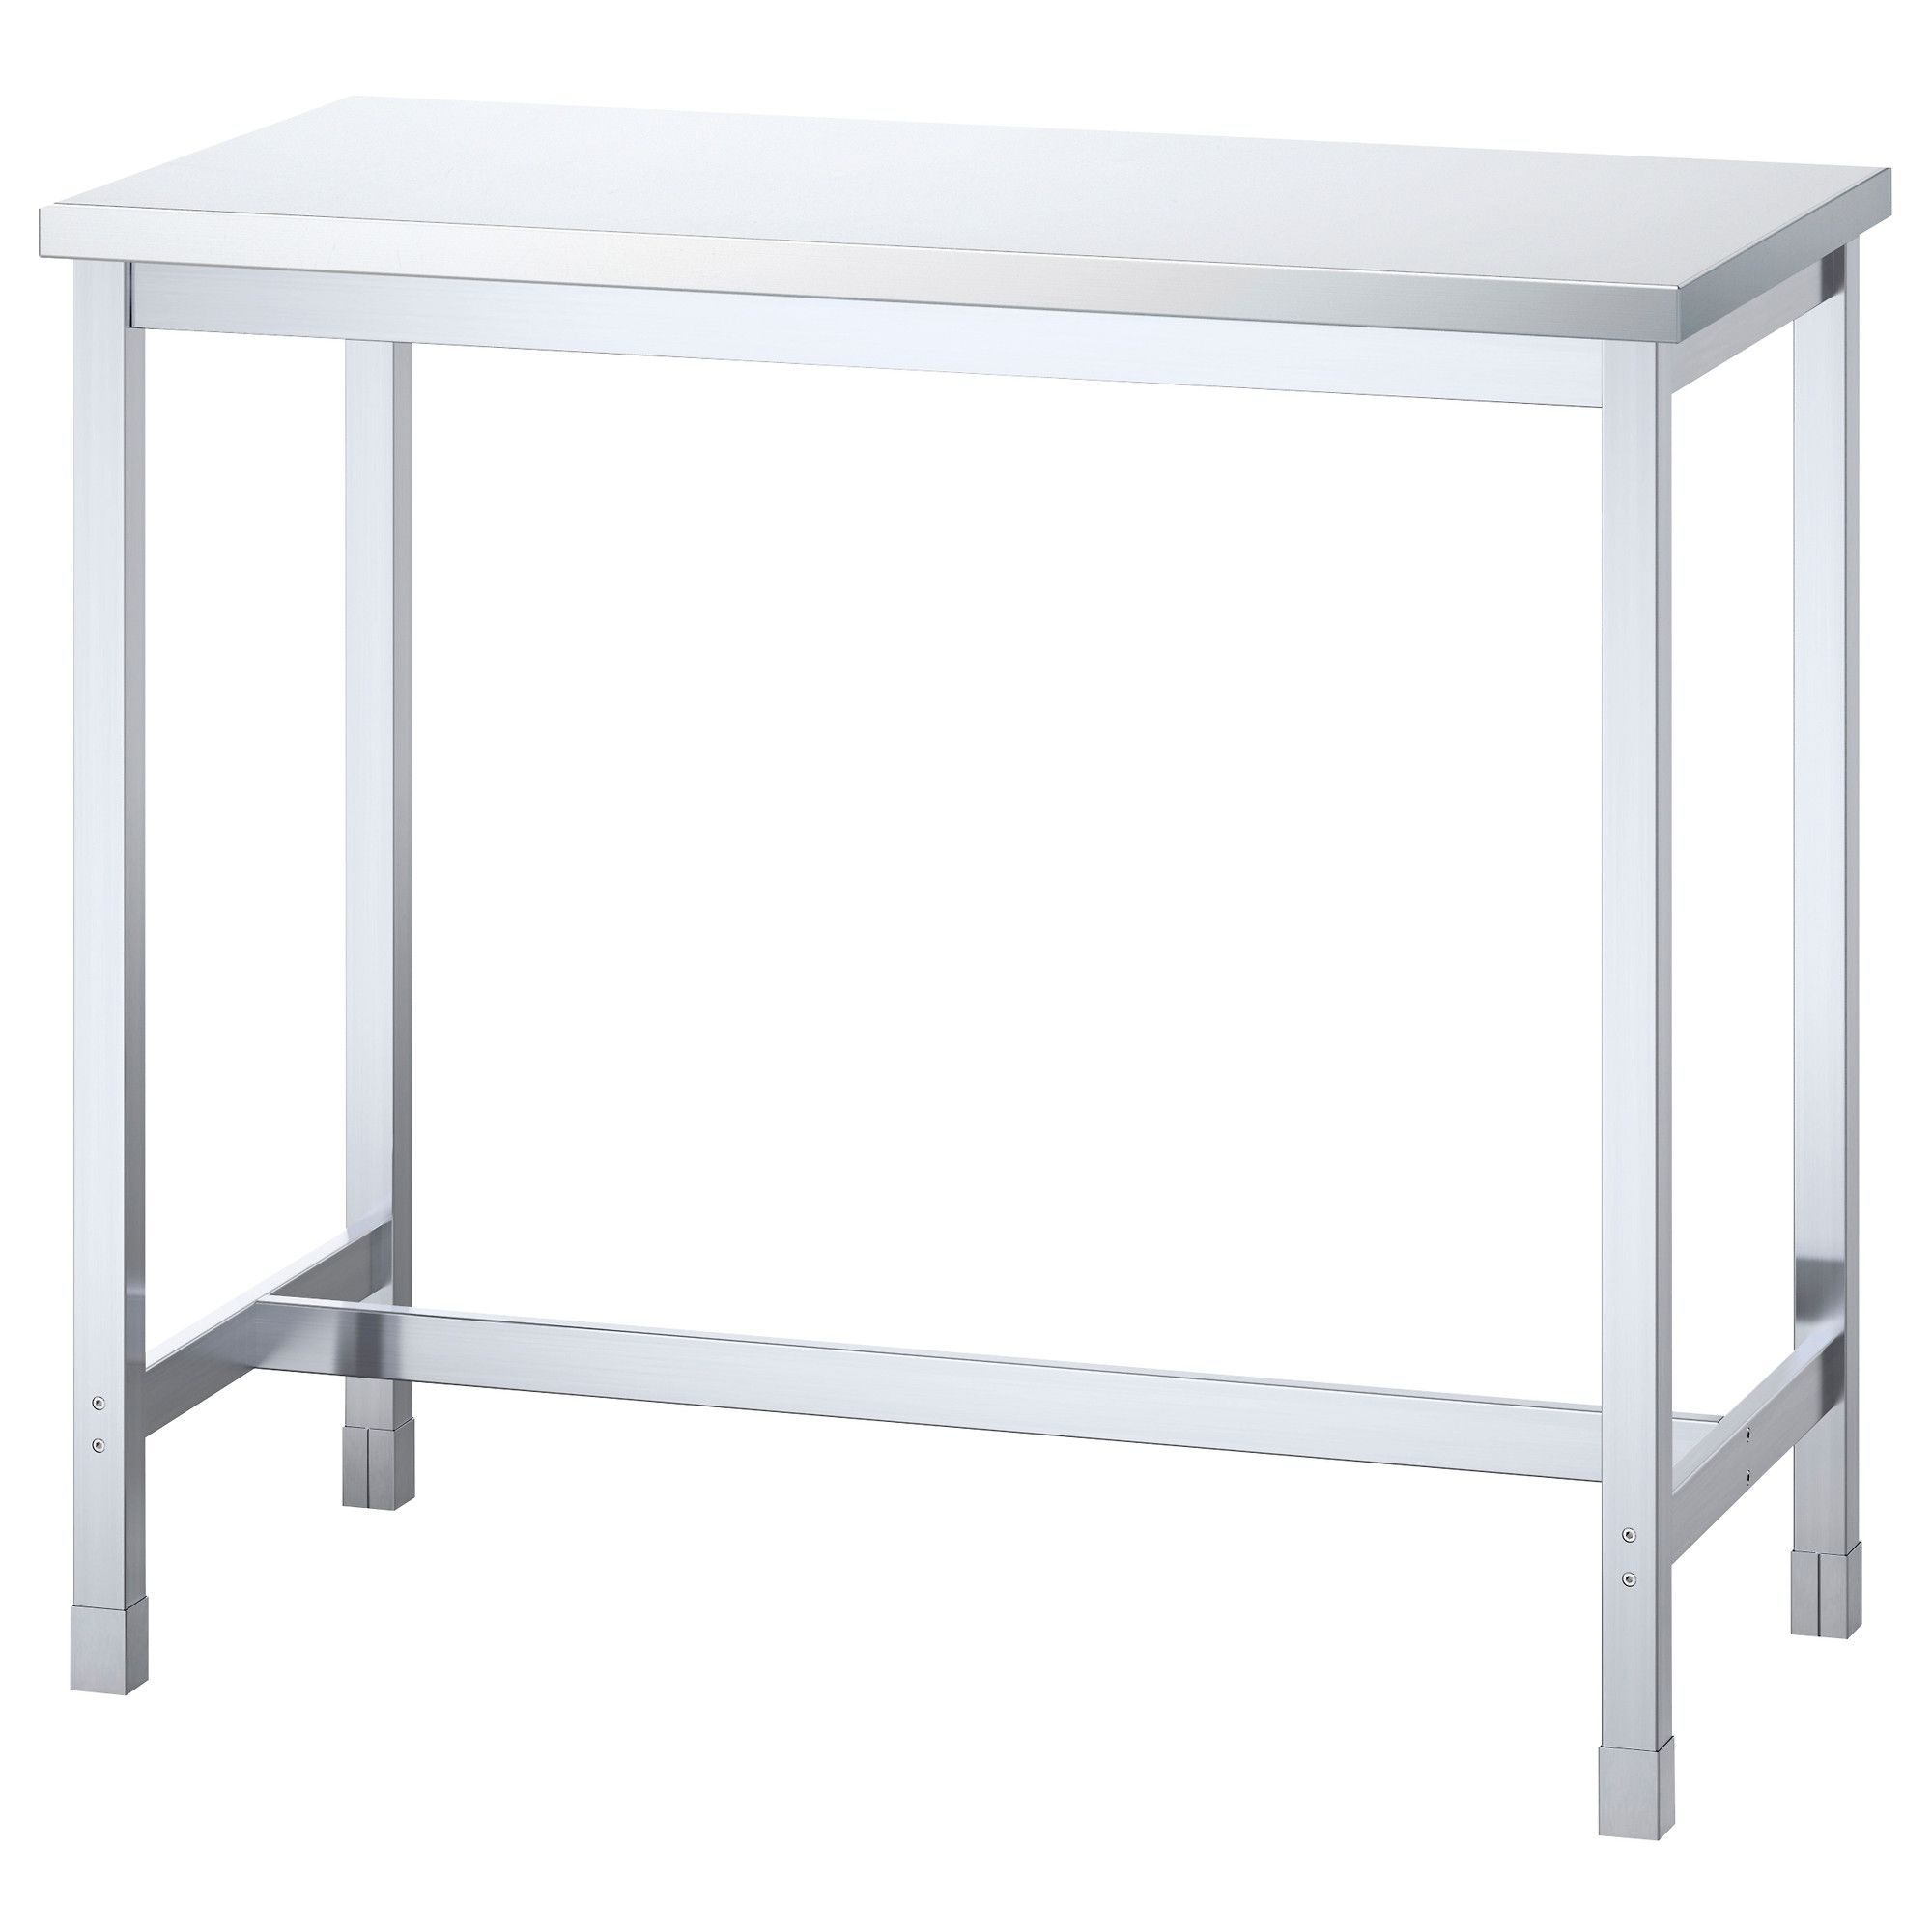 Superieur UTBY Bar Table   Stainless Steel   IKEA   For Danu0027s Desk... Standing Desk  In The Living Room